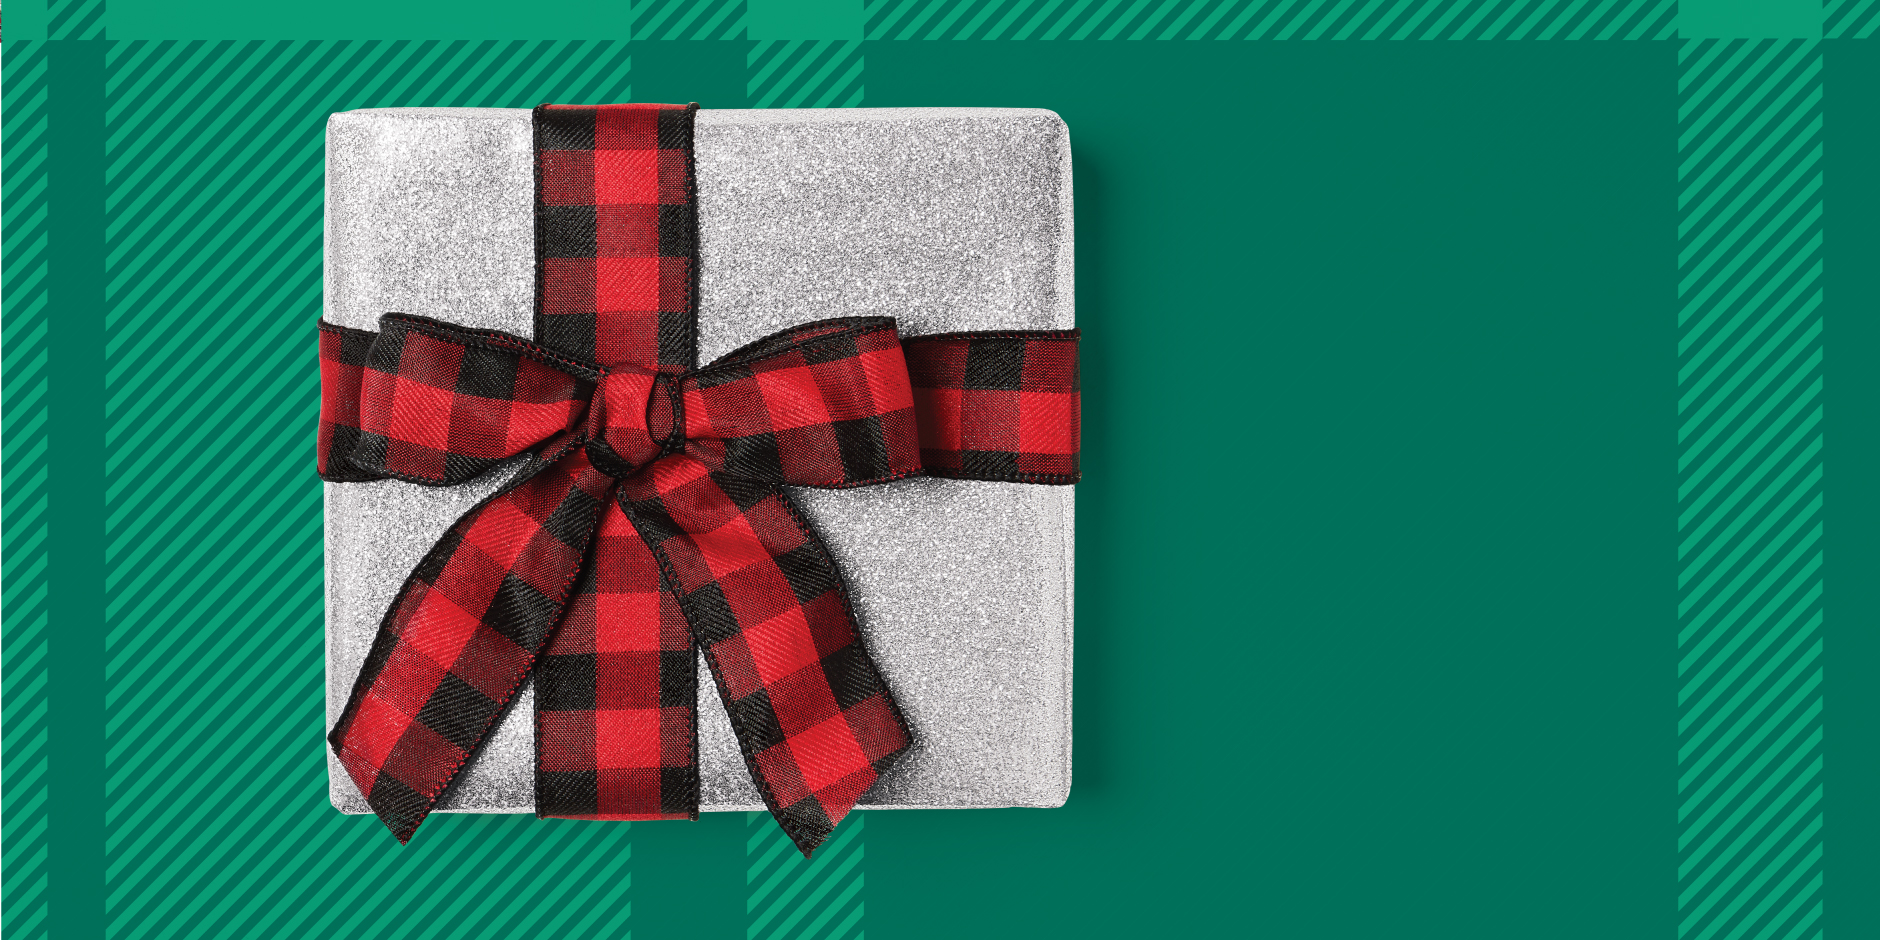 A silver gift wrapped in a buffalo plaid book, against a green plaid background